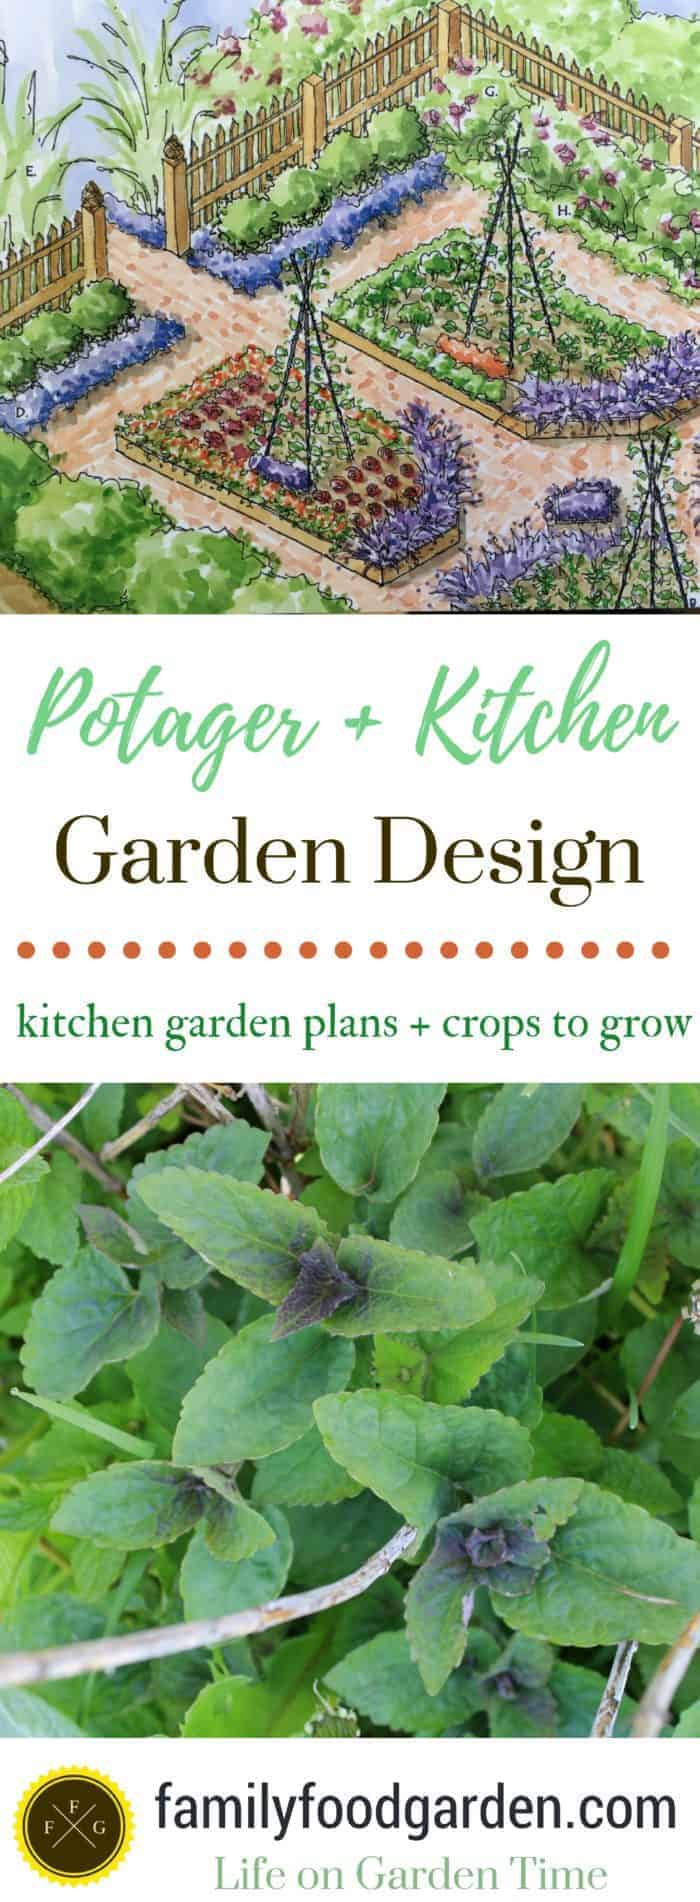 Potager Kitchen Garden Design Plans | Family Food Garden